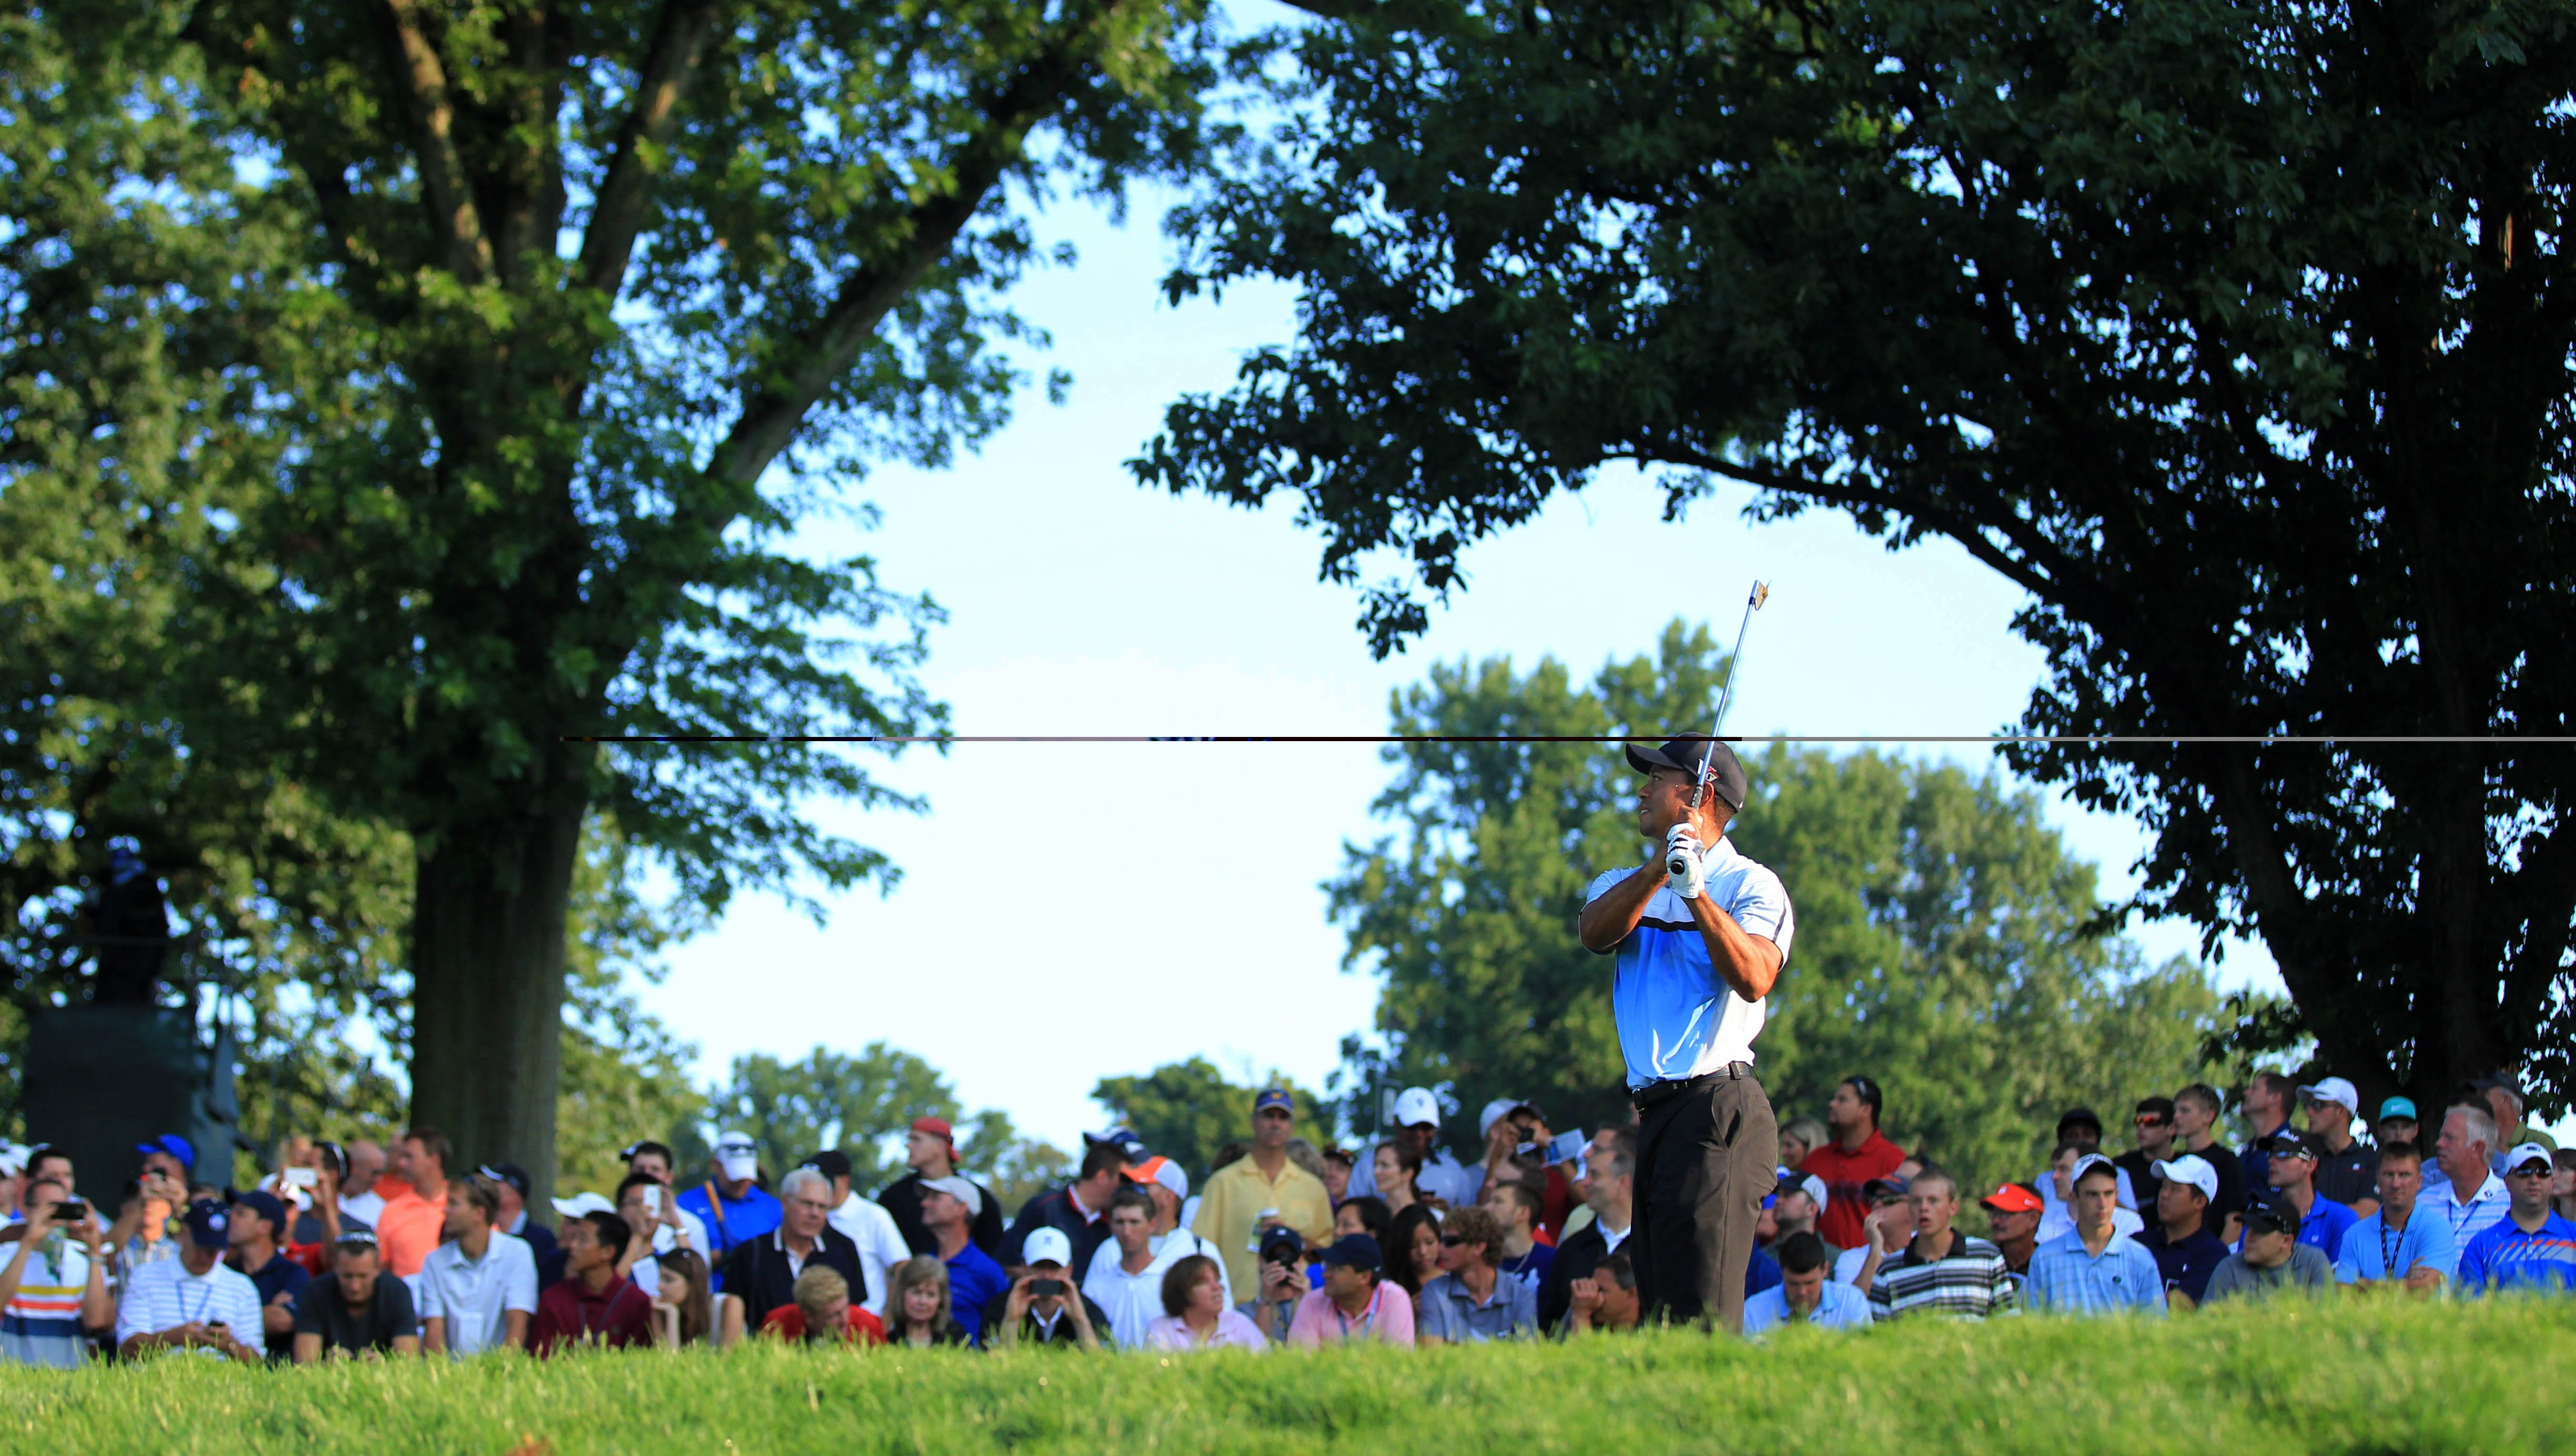 Tiger Woods warms up on the practice range before the first round of the 95th PGA Championship at Oak Hill Country Club.